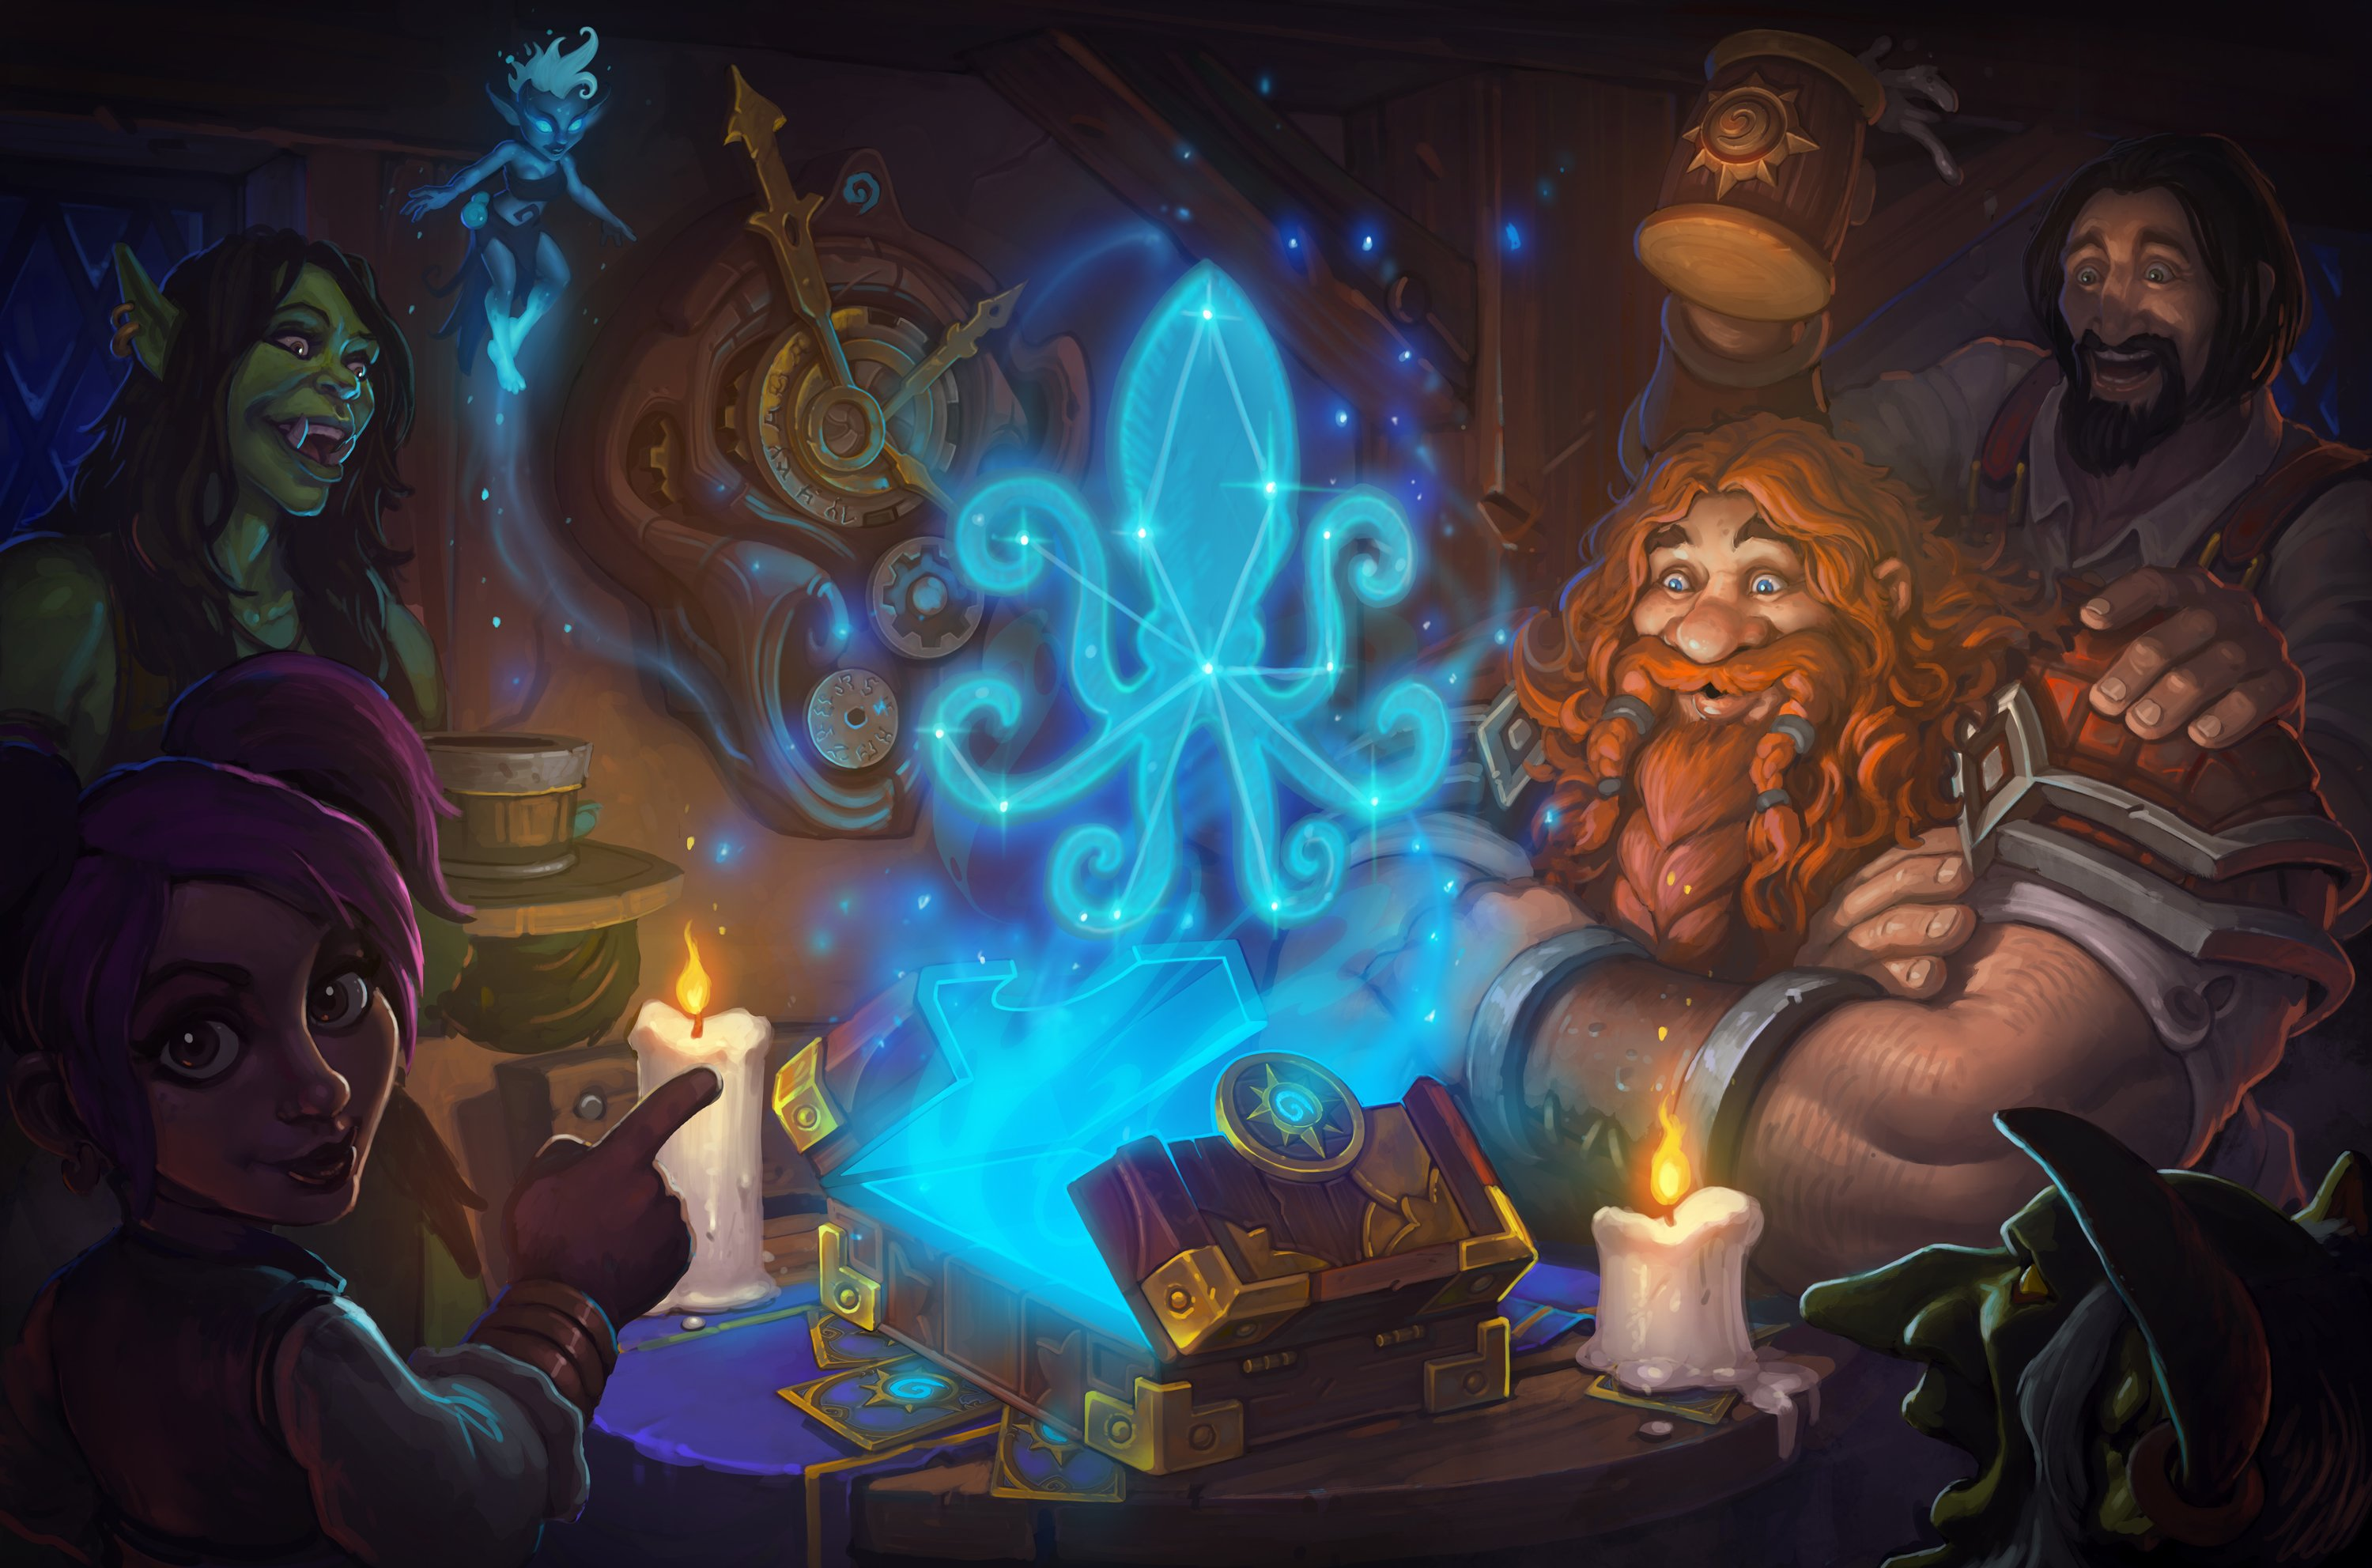 A new way to play Hearthstone: Heroes of Warcraft will arrive this spring